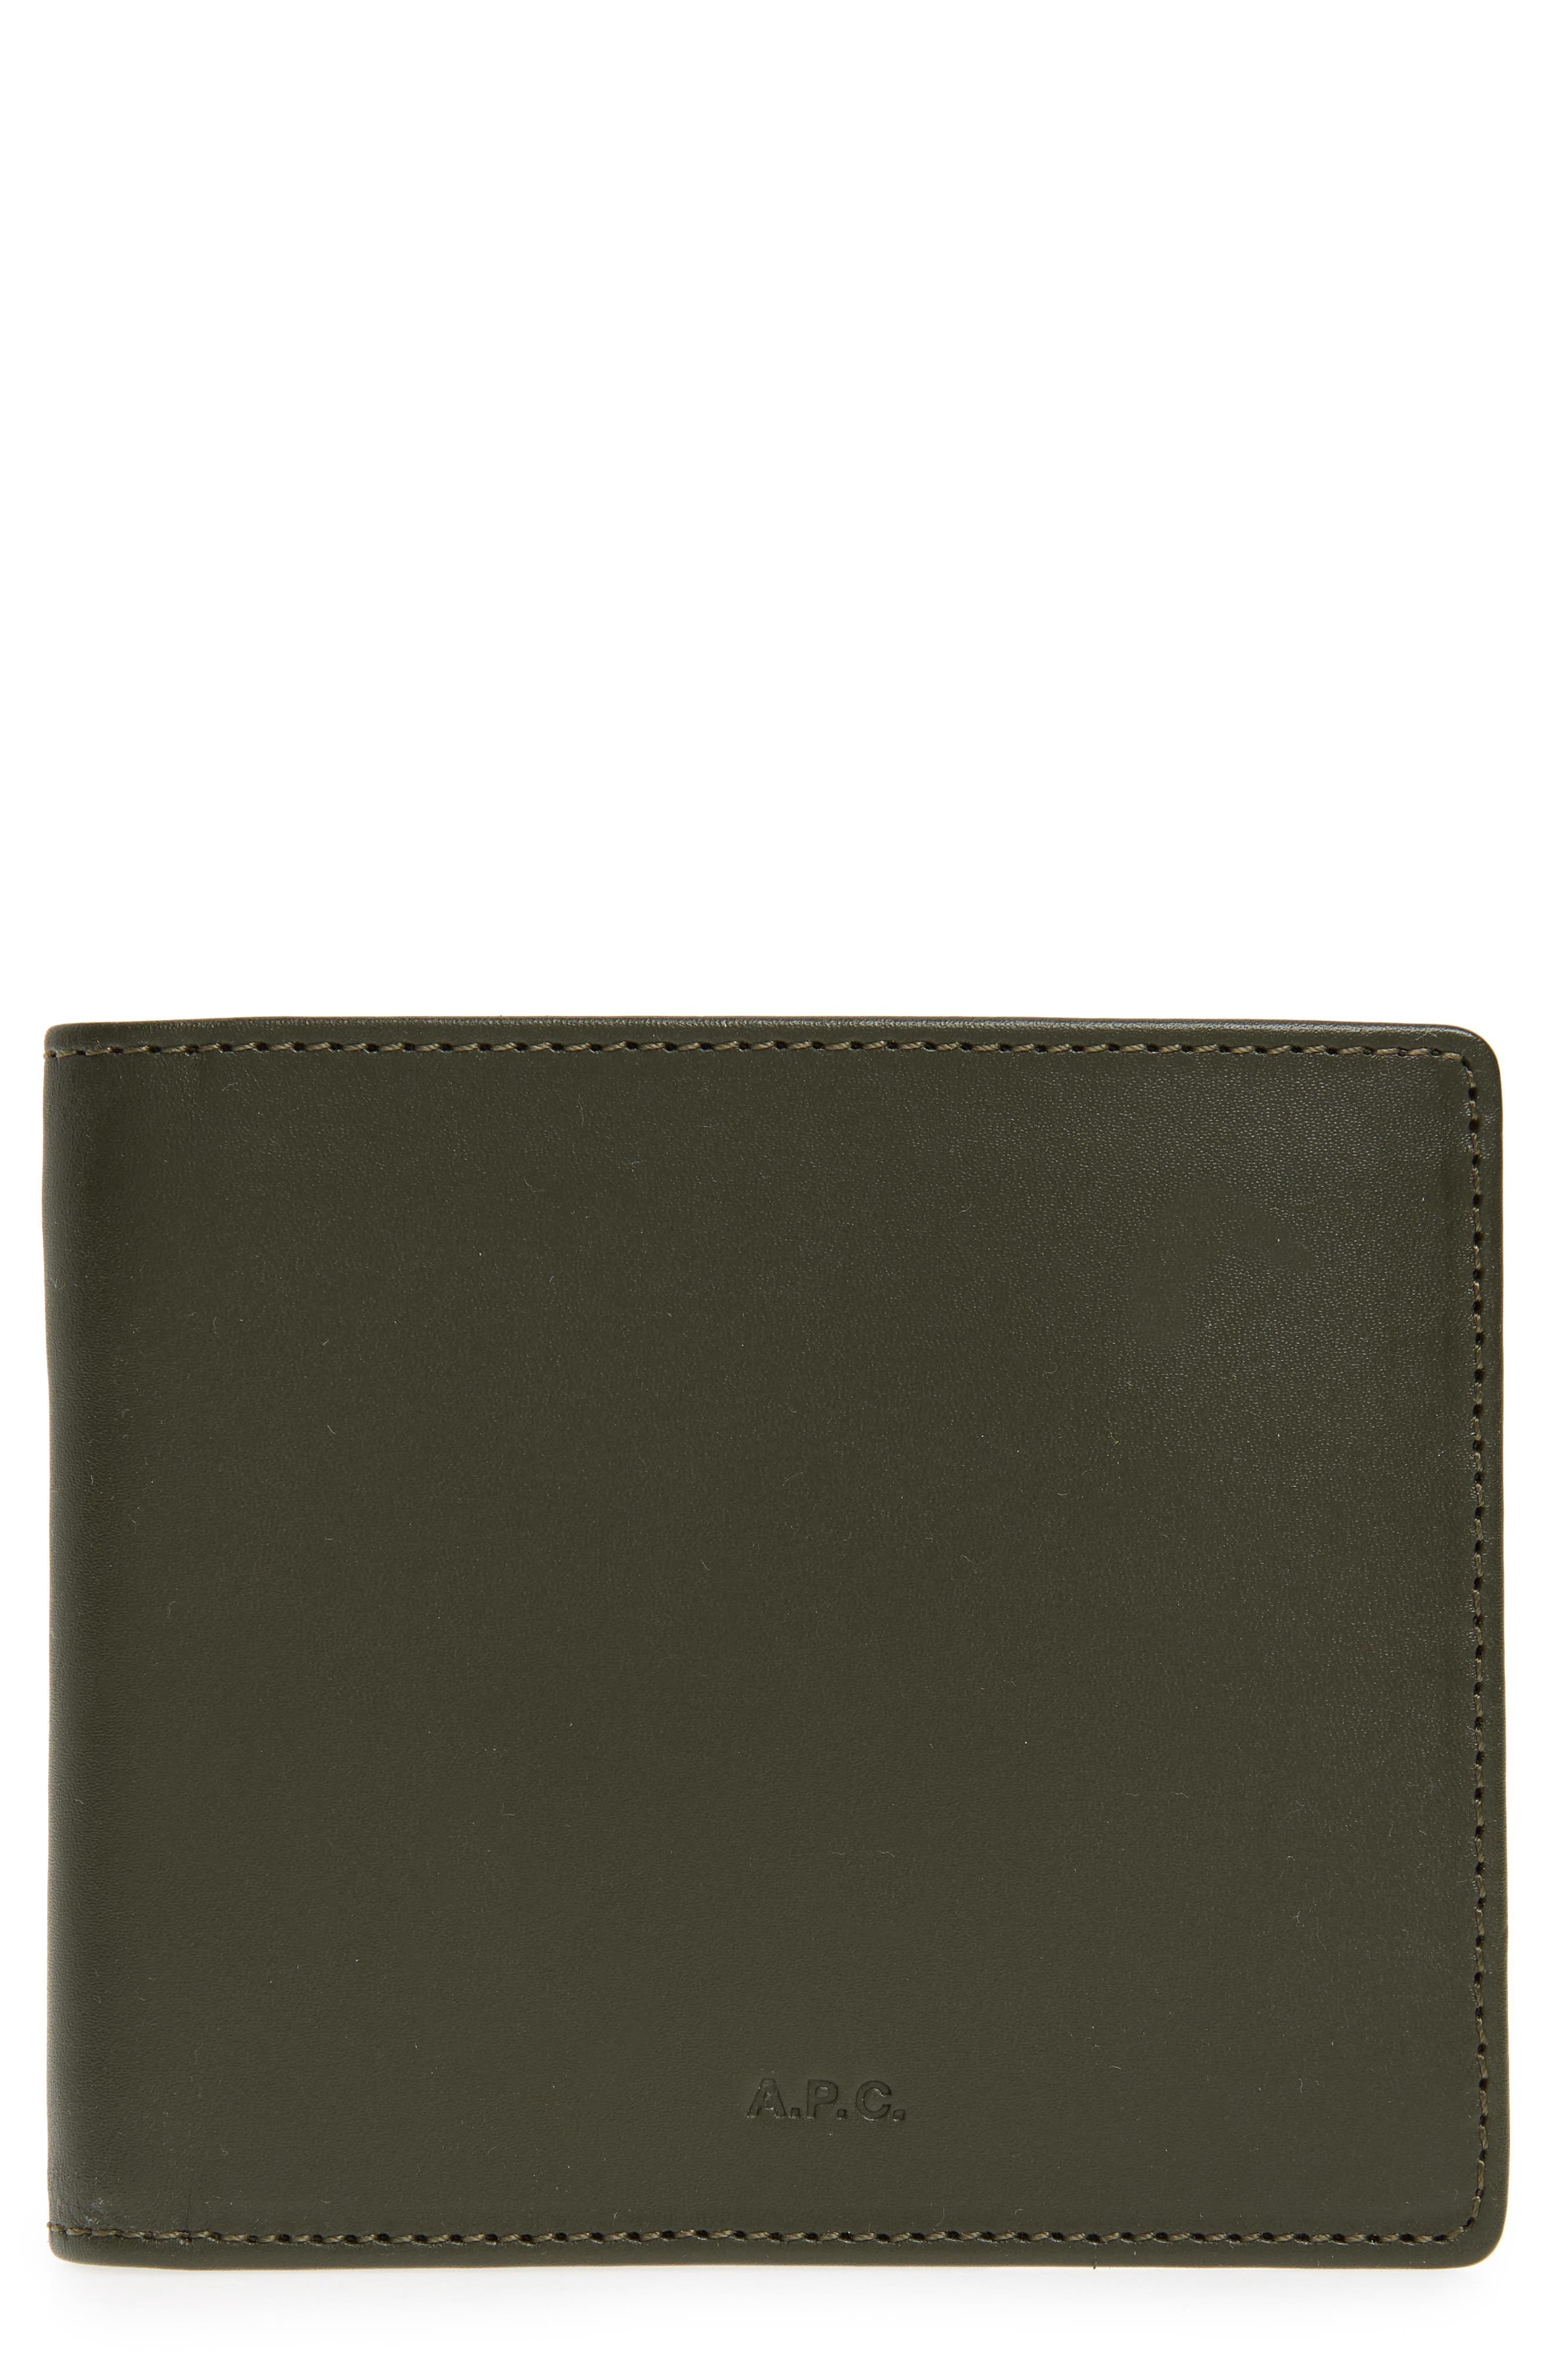 Aly Bifold Leather Wallet,                         Main,                         color, Khaki